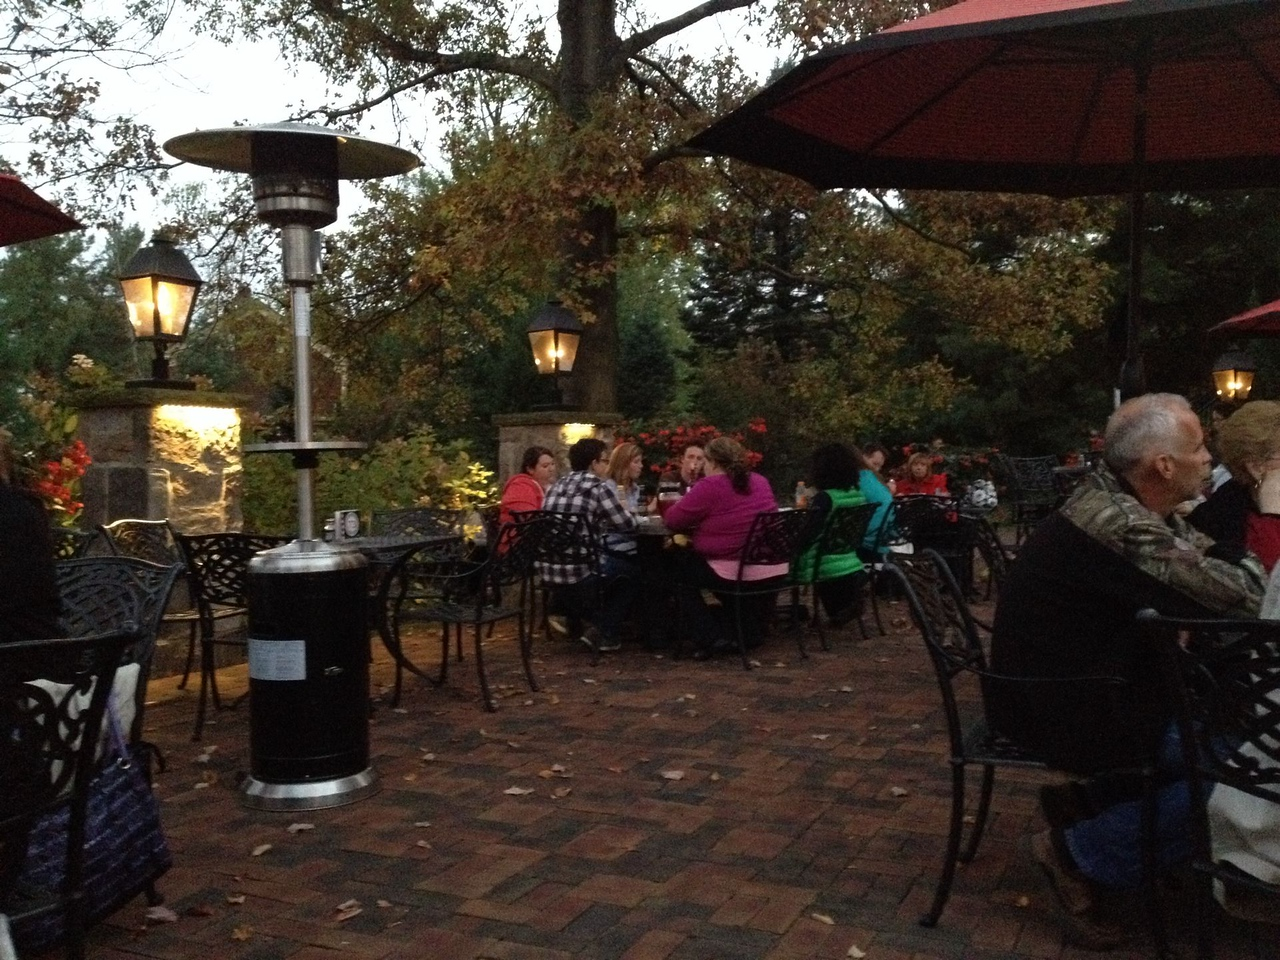 The Piazza at Gervasi